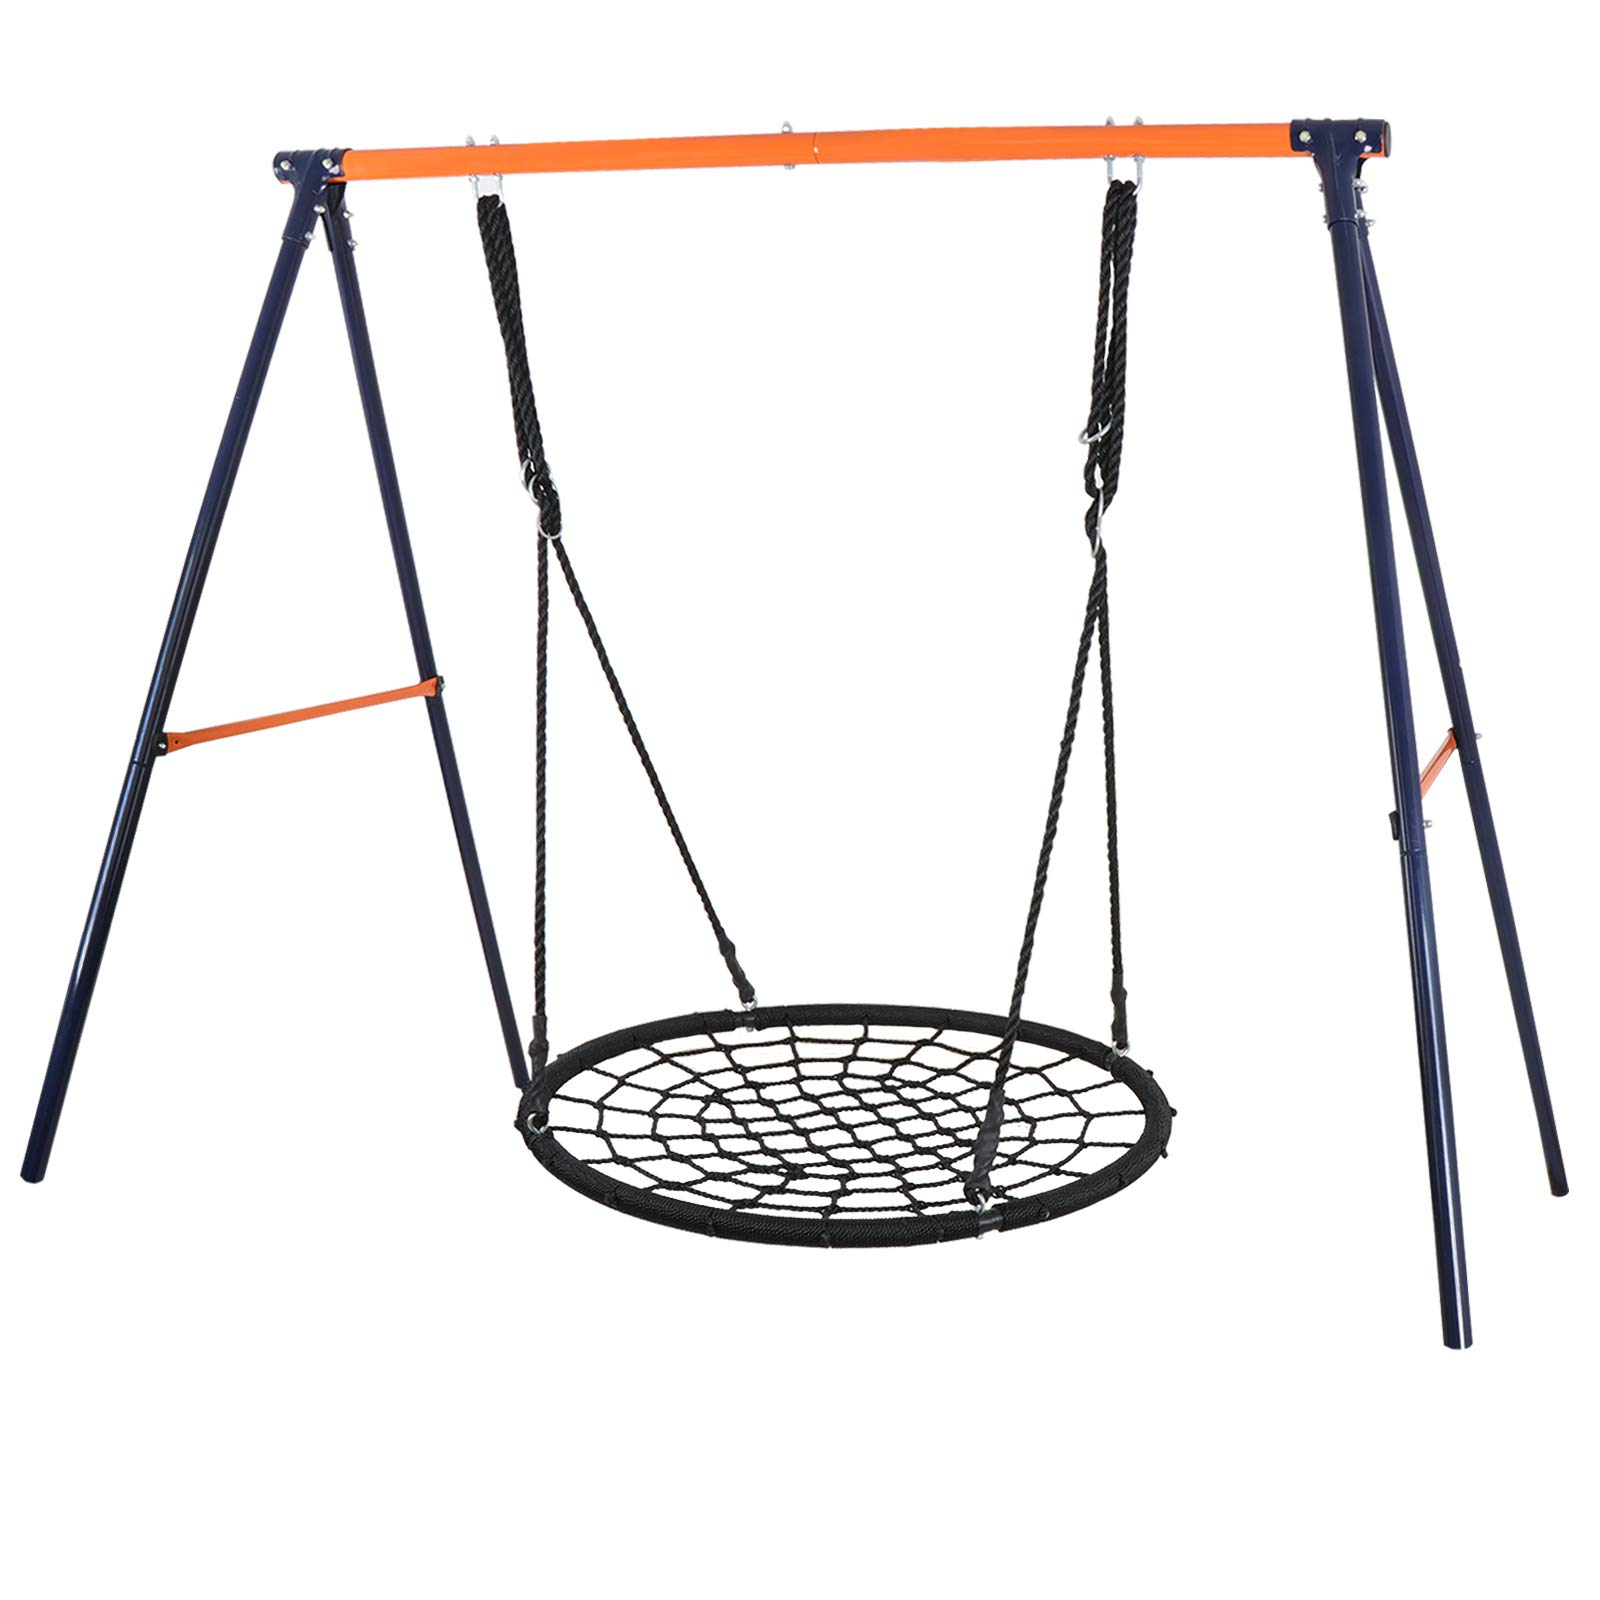 ZENY Swing Set - 24'' Spinner Web Tree Swing Nylon Rope + All Weather Steel A Swing Frame Stand,Great for Backyard Kids Play Fun by ZENY (Image #3)